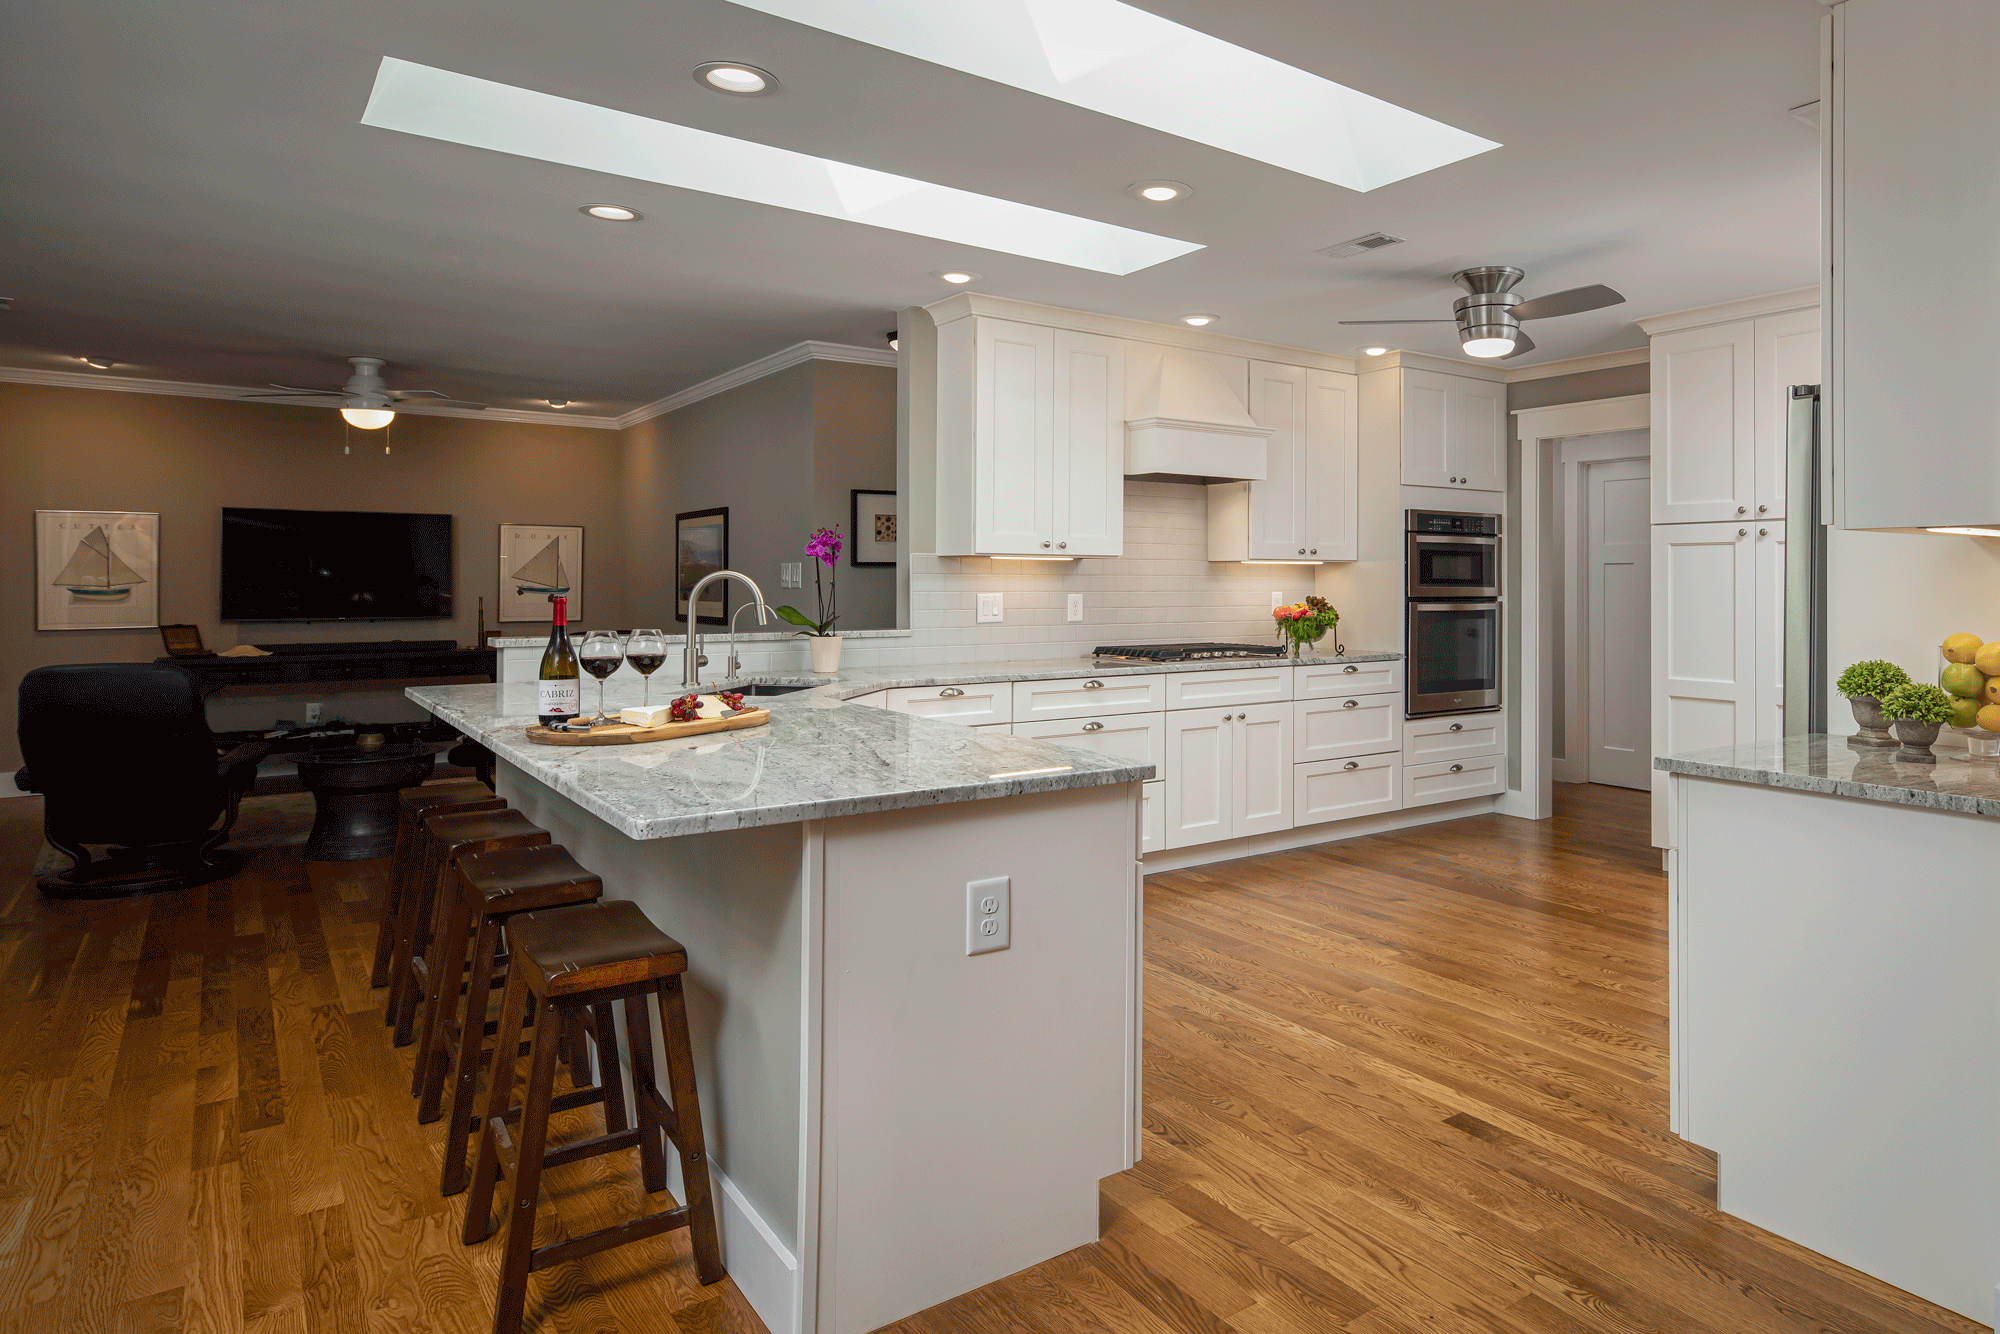 kitchen remodel with lighting, island, seating, and decor